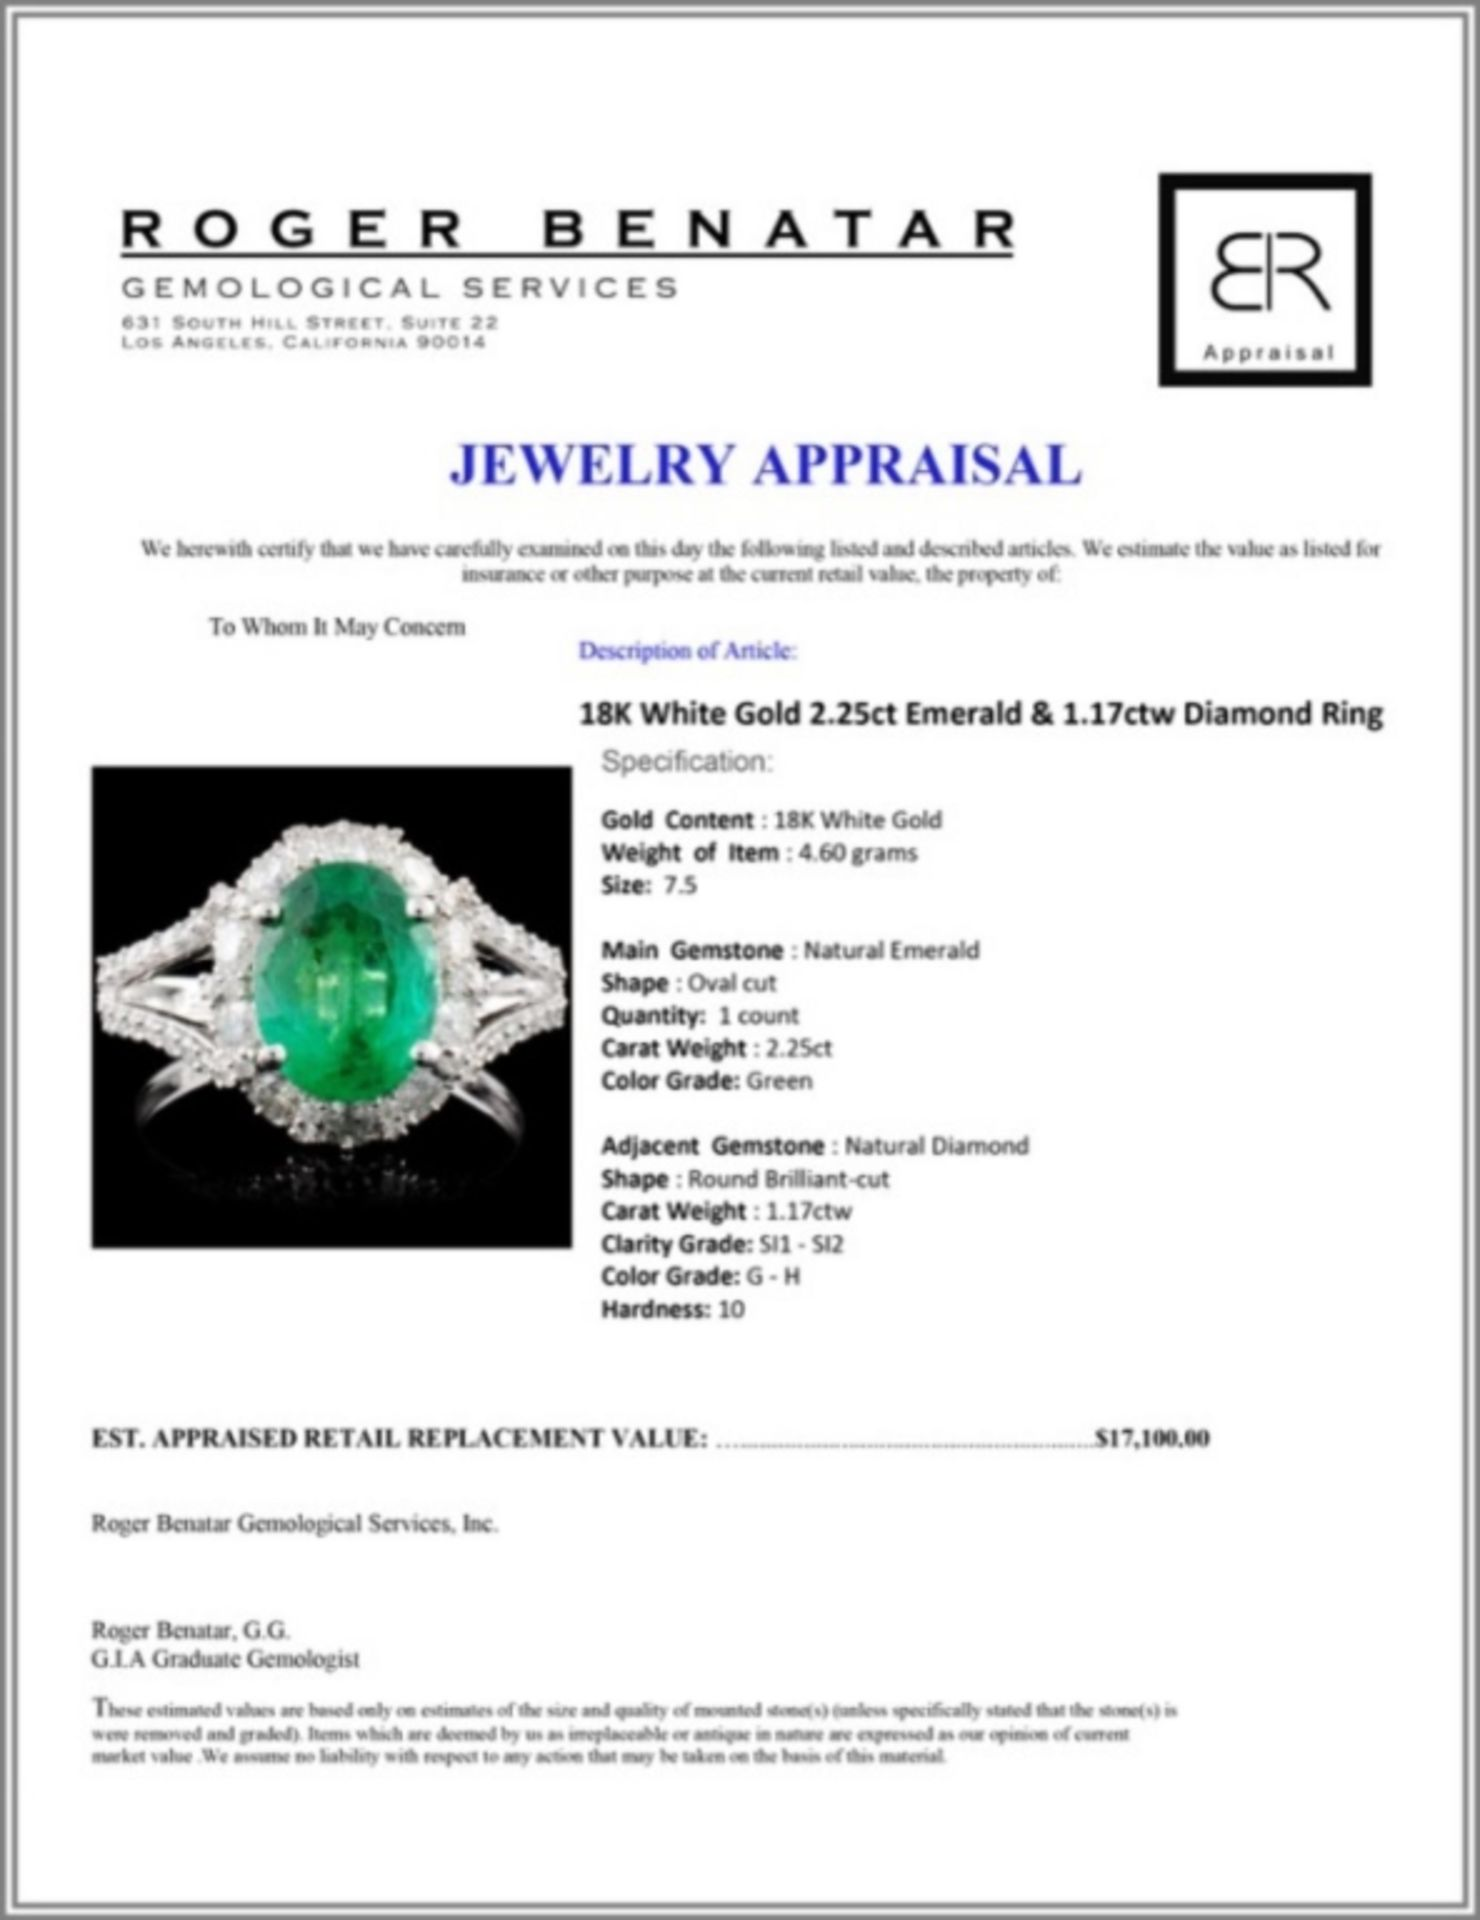 18K White Gold 2.25ct Emerald & 1.17ctw Diamond Ri - Image 4 of 4